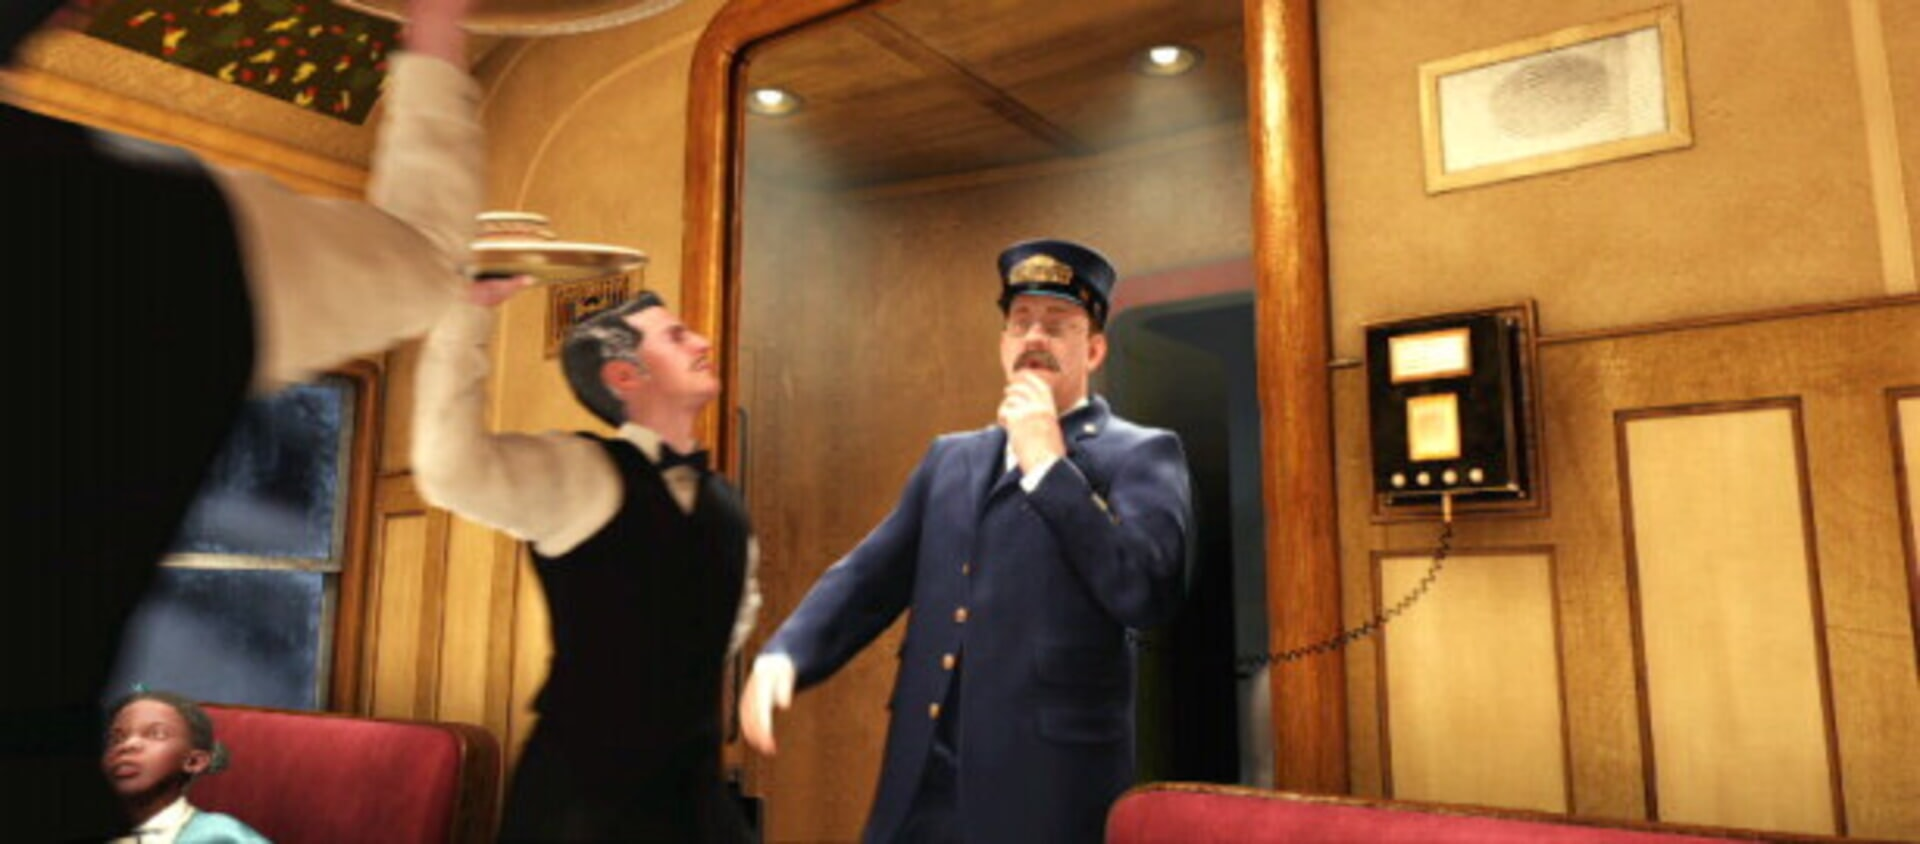 The Polar Express - Image 24